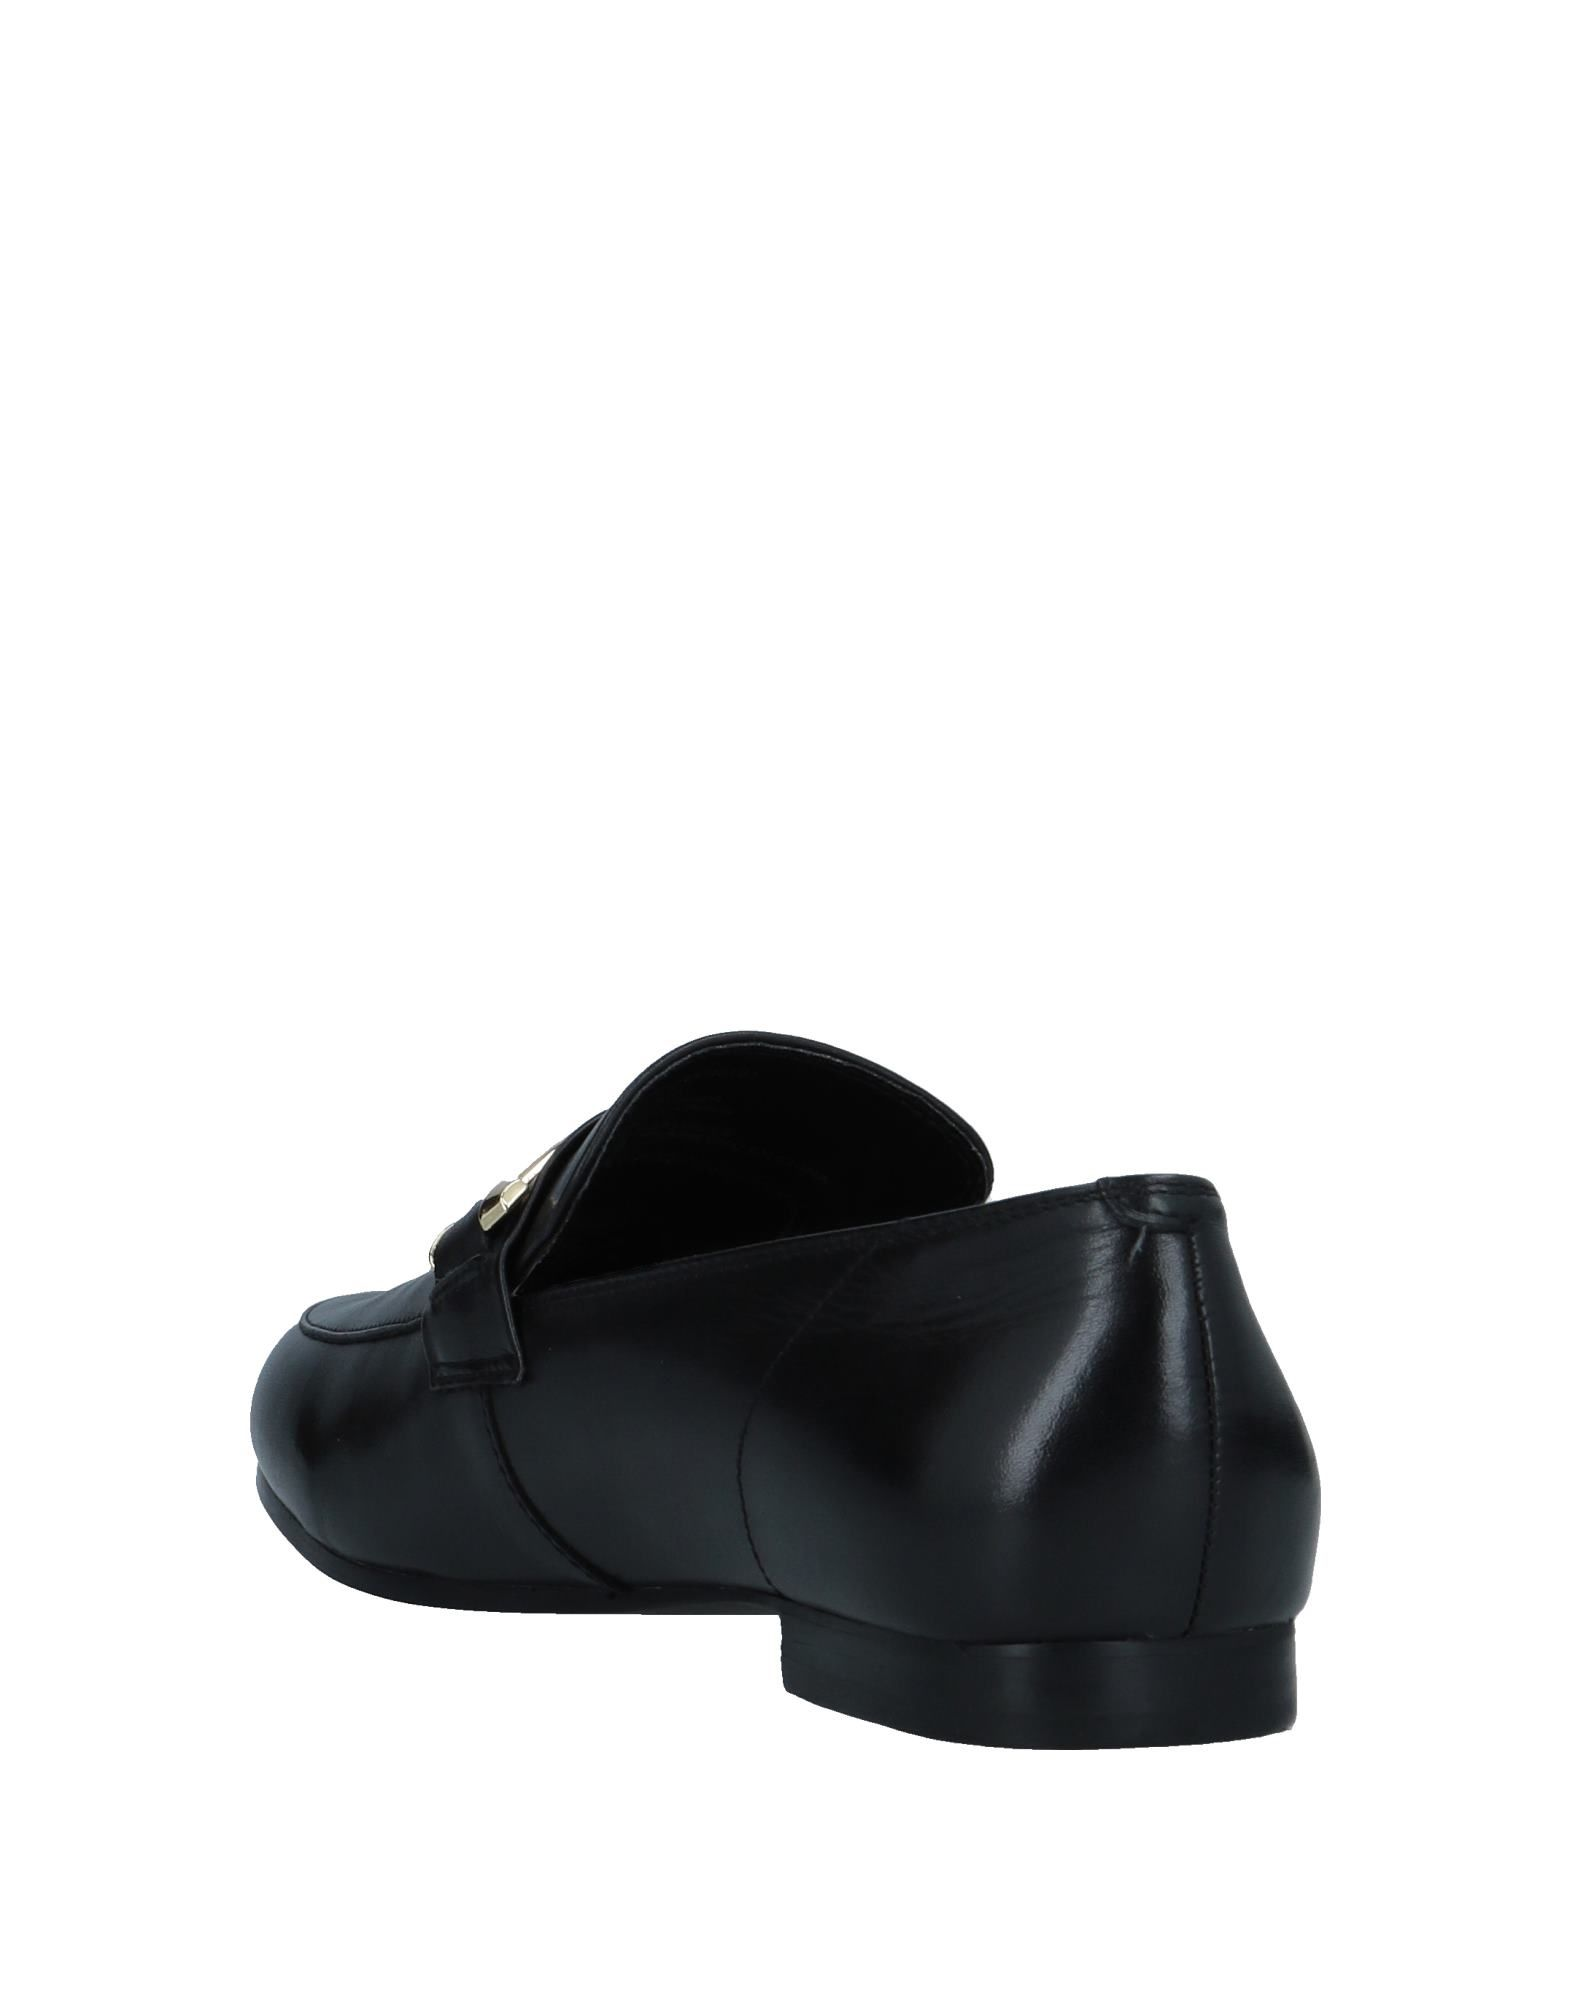 Steve Steve Steve Madden Loafers - Women Steve Madden Loafers online on  United Kingdom - 11533076QV 78aa7d